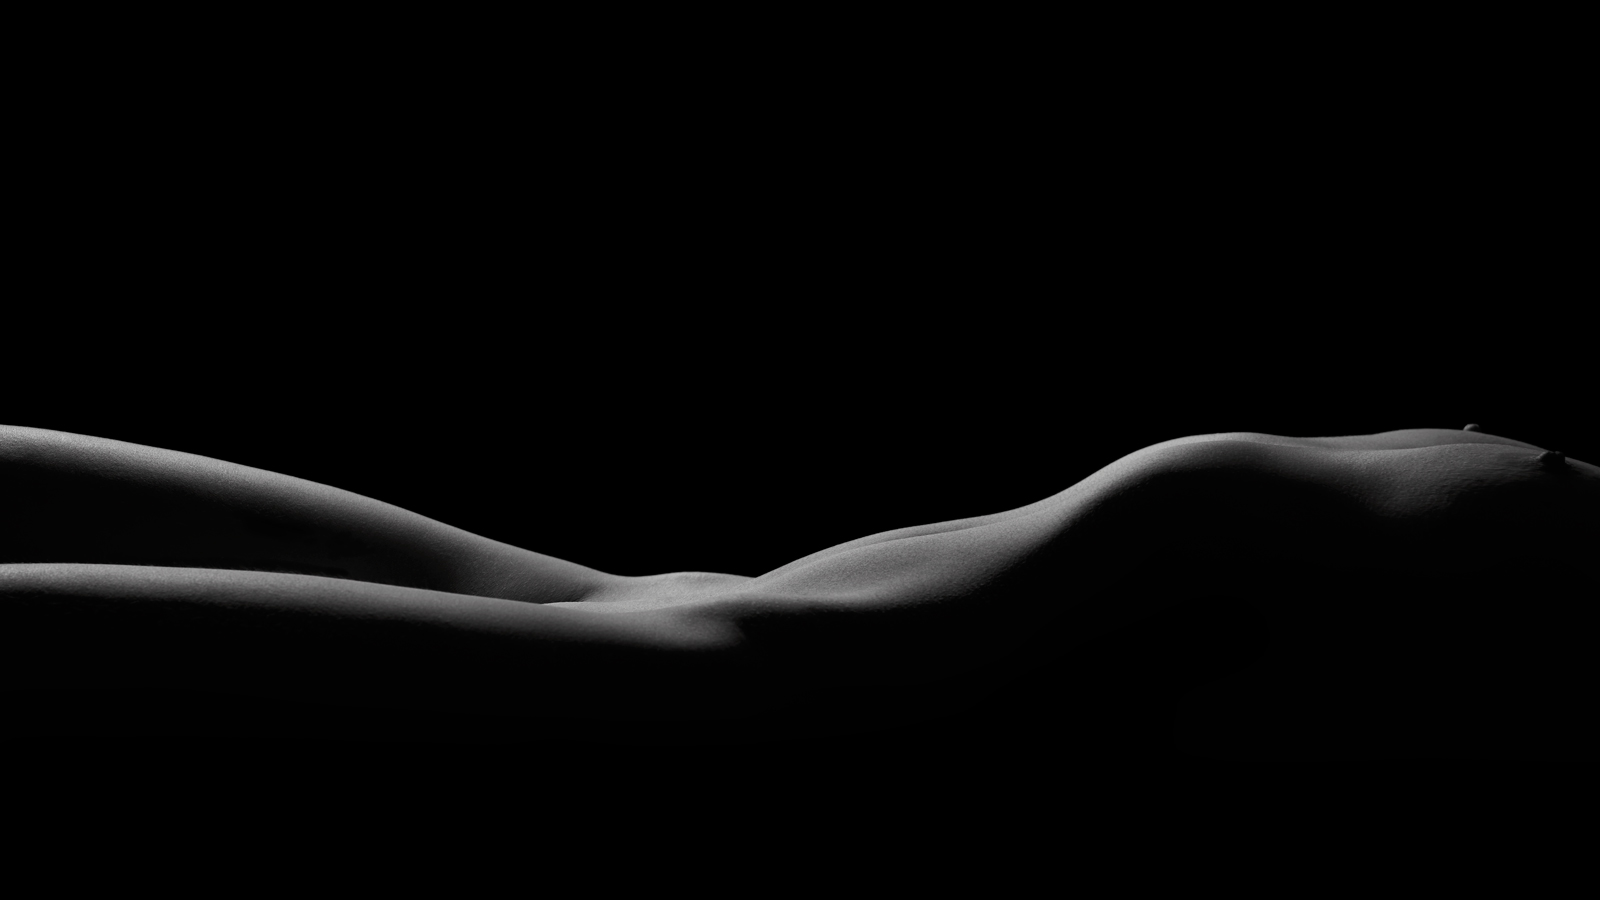 160309_Bodyscapes_S_047.jpg